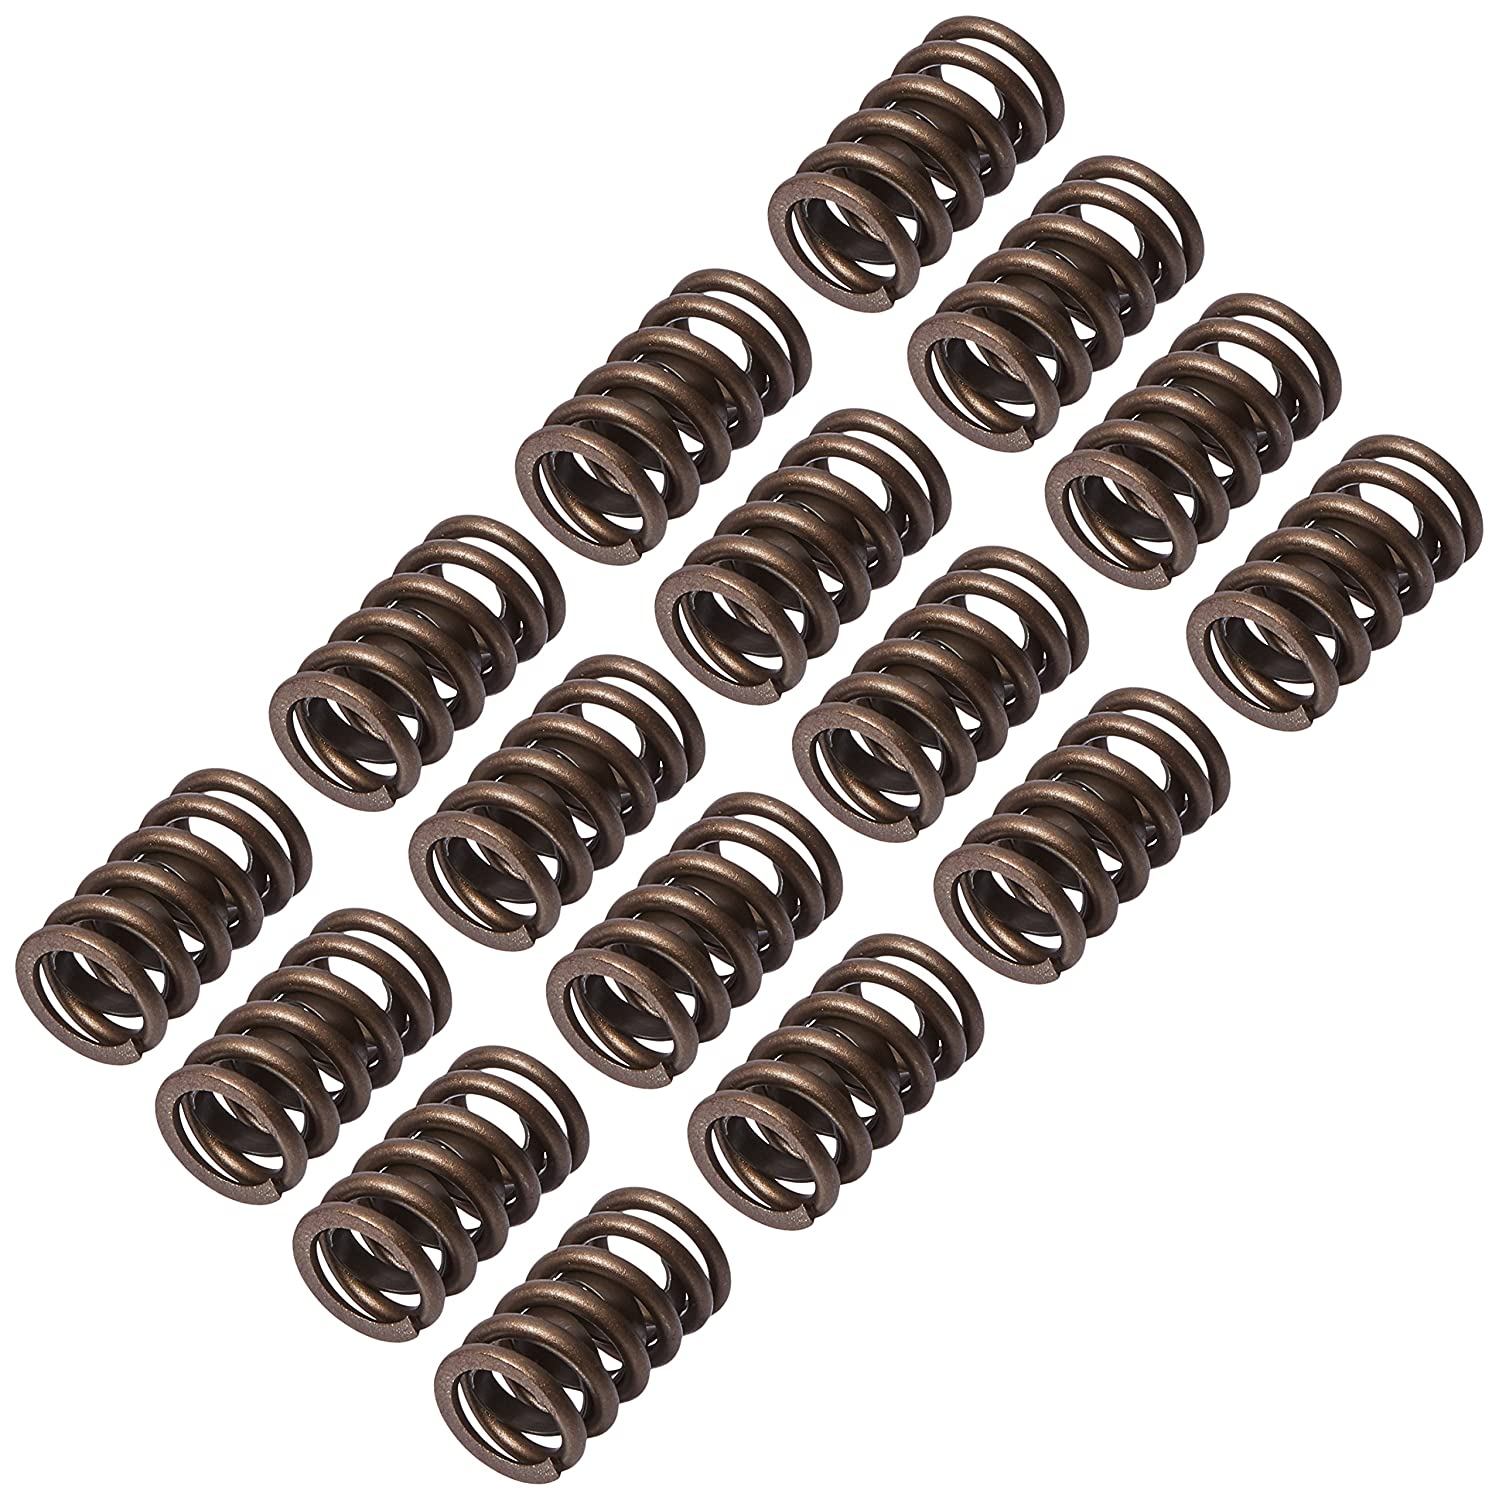 Howards (98212) 1.265' O.D. Single Valve Spring